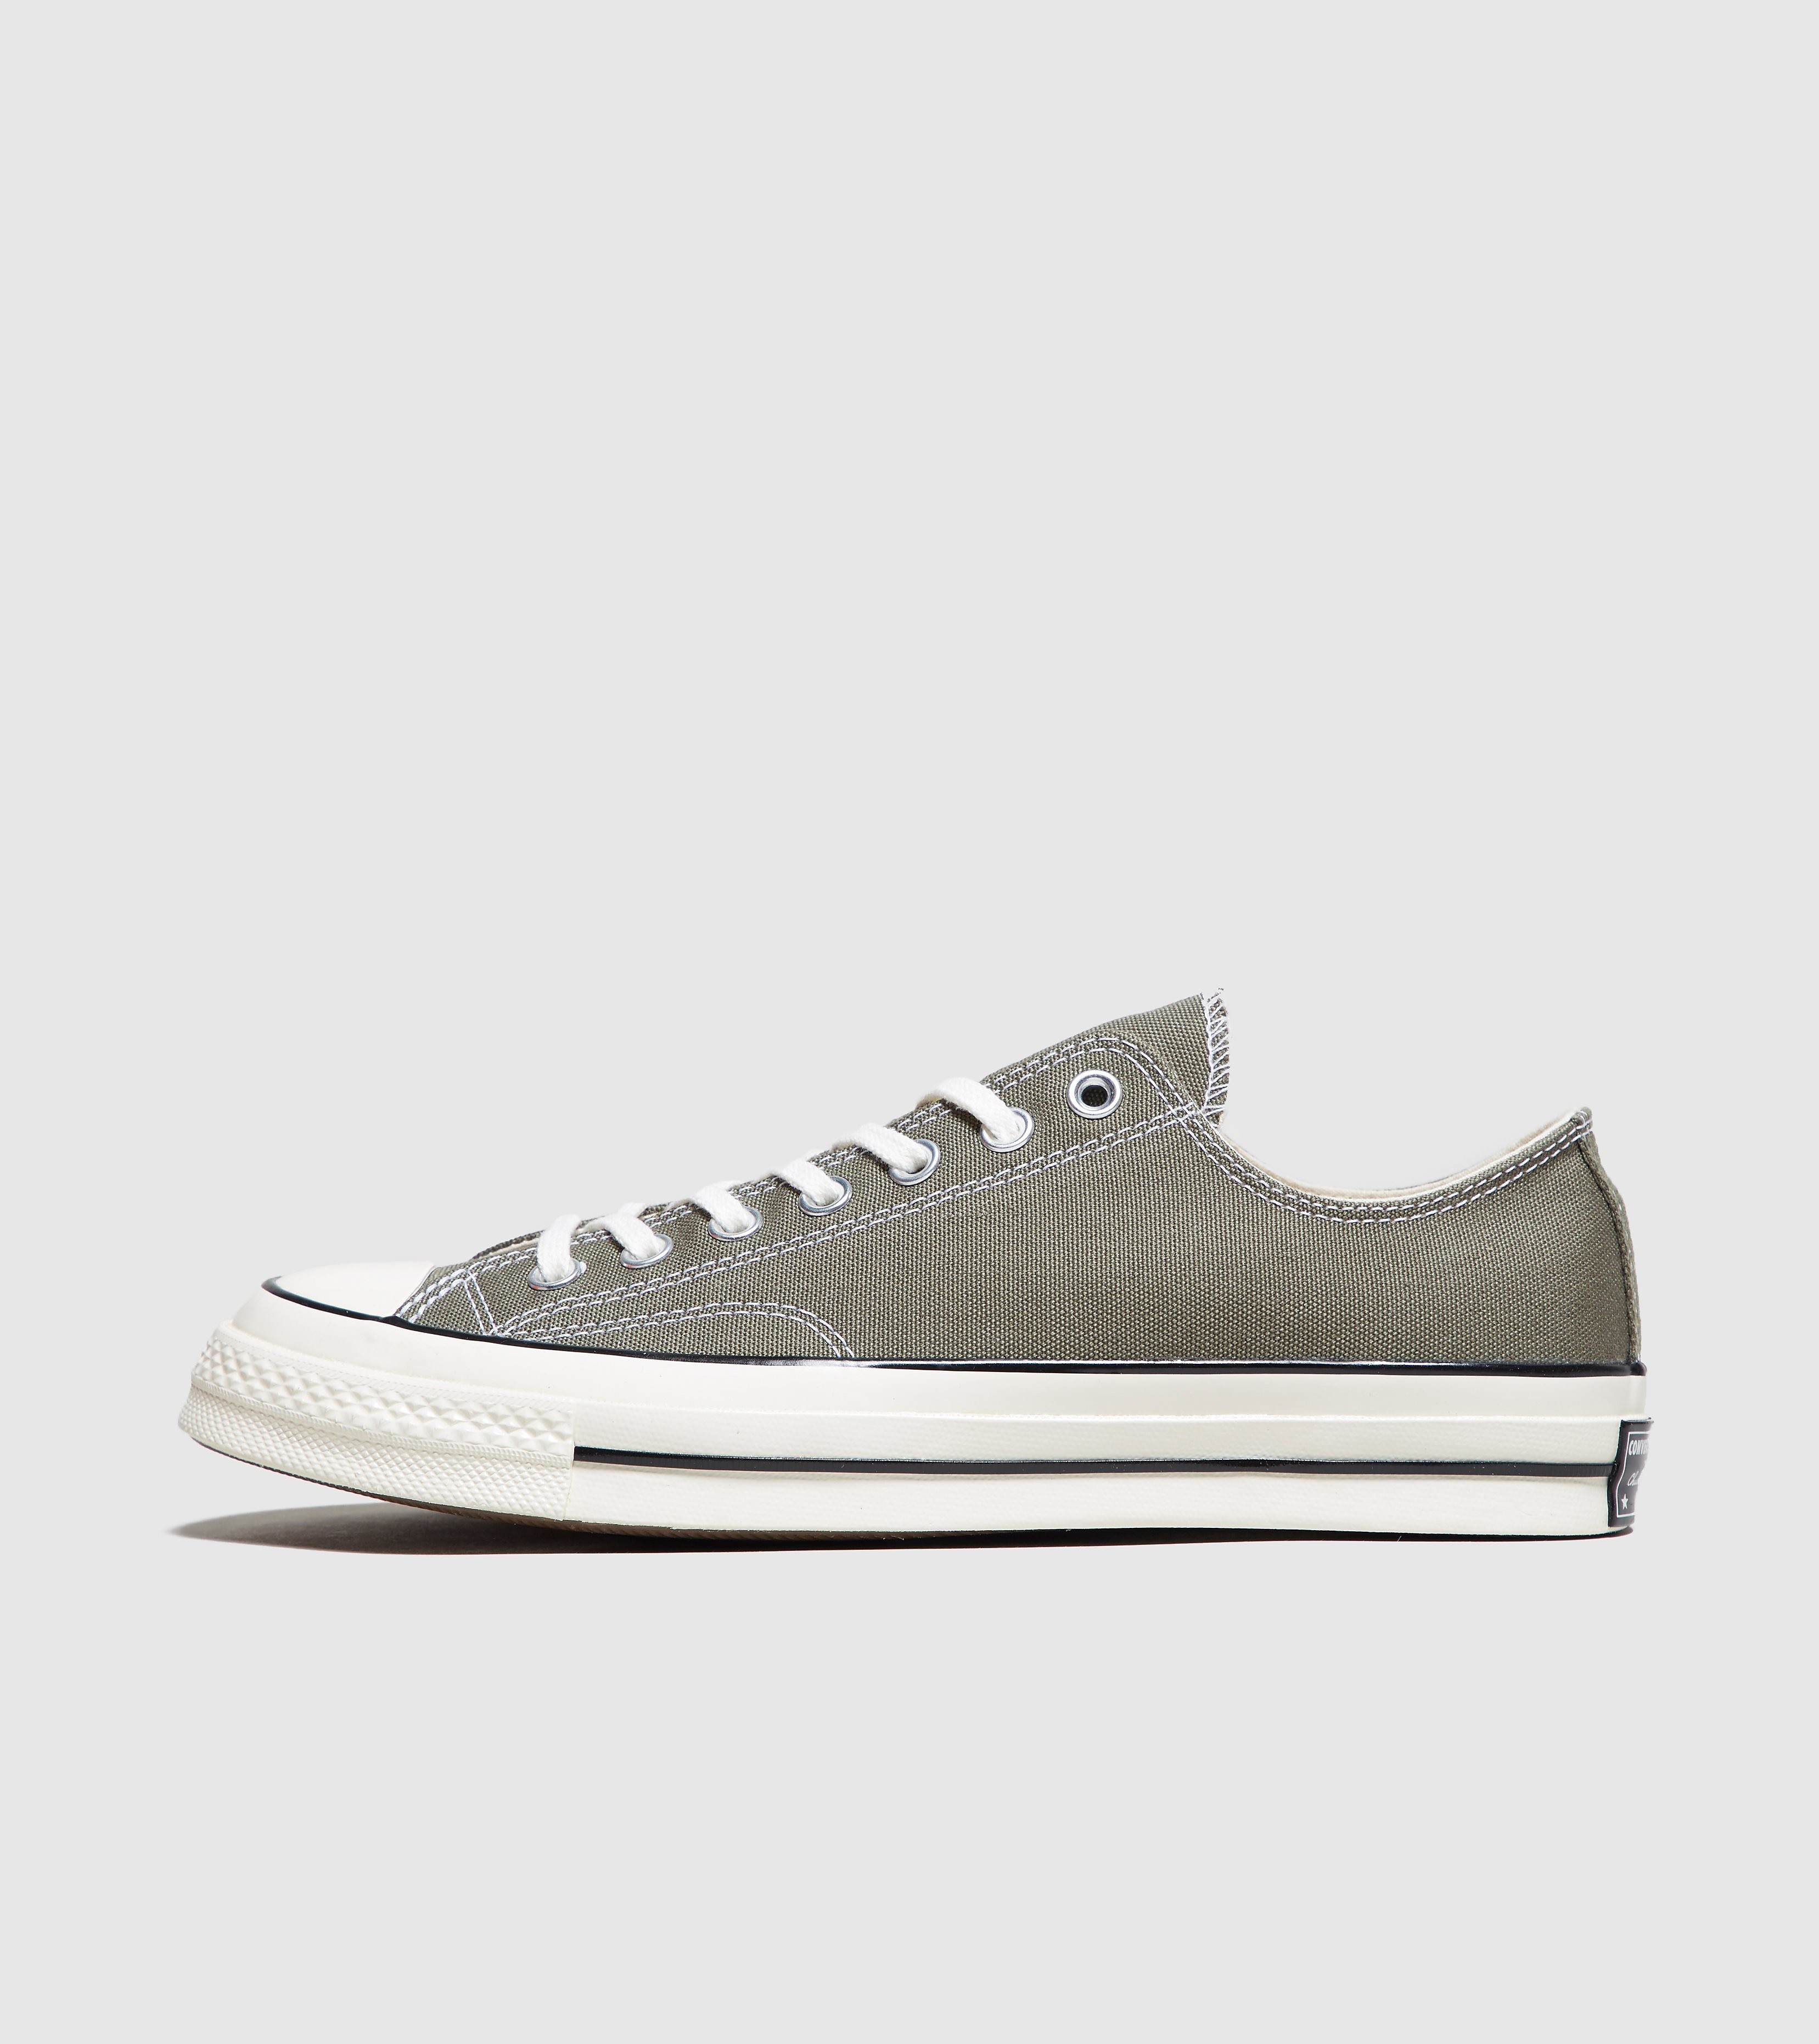 Converse Chuck Taylor All Star 70's Ox Low